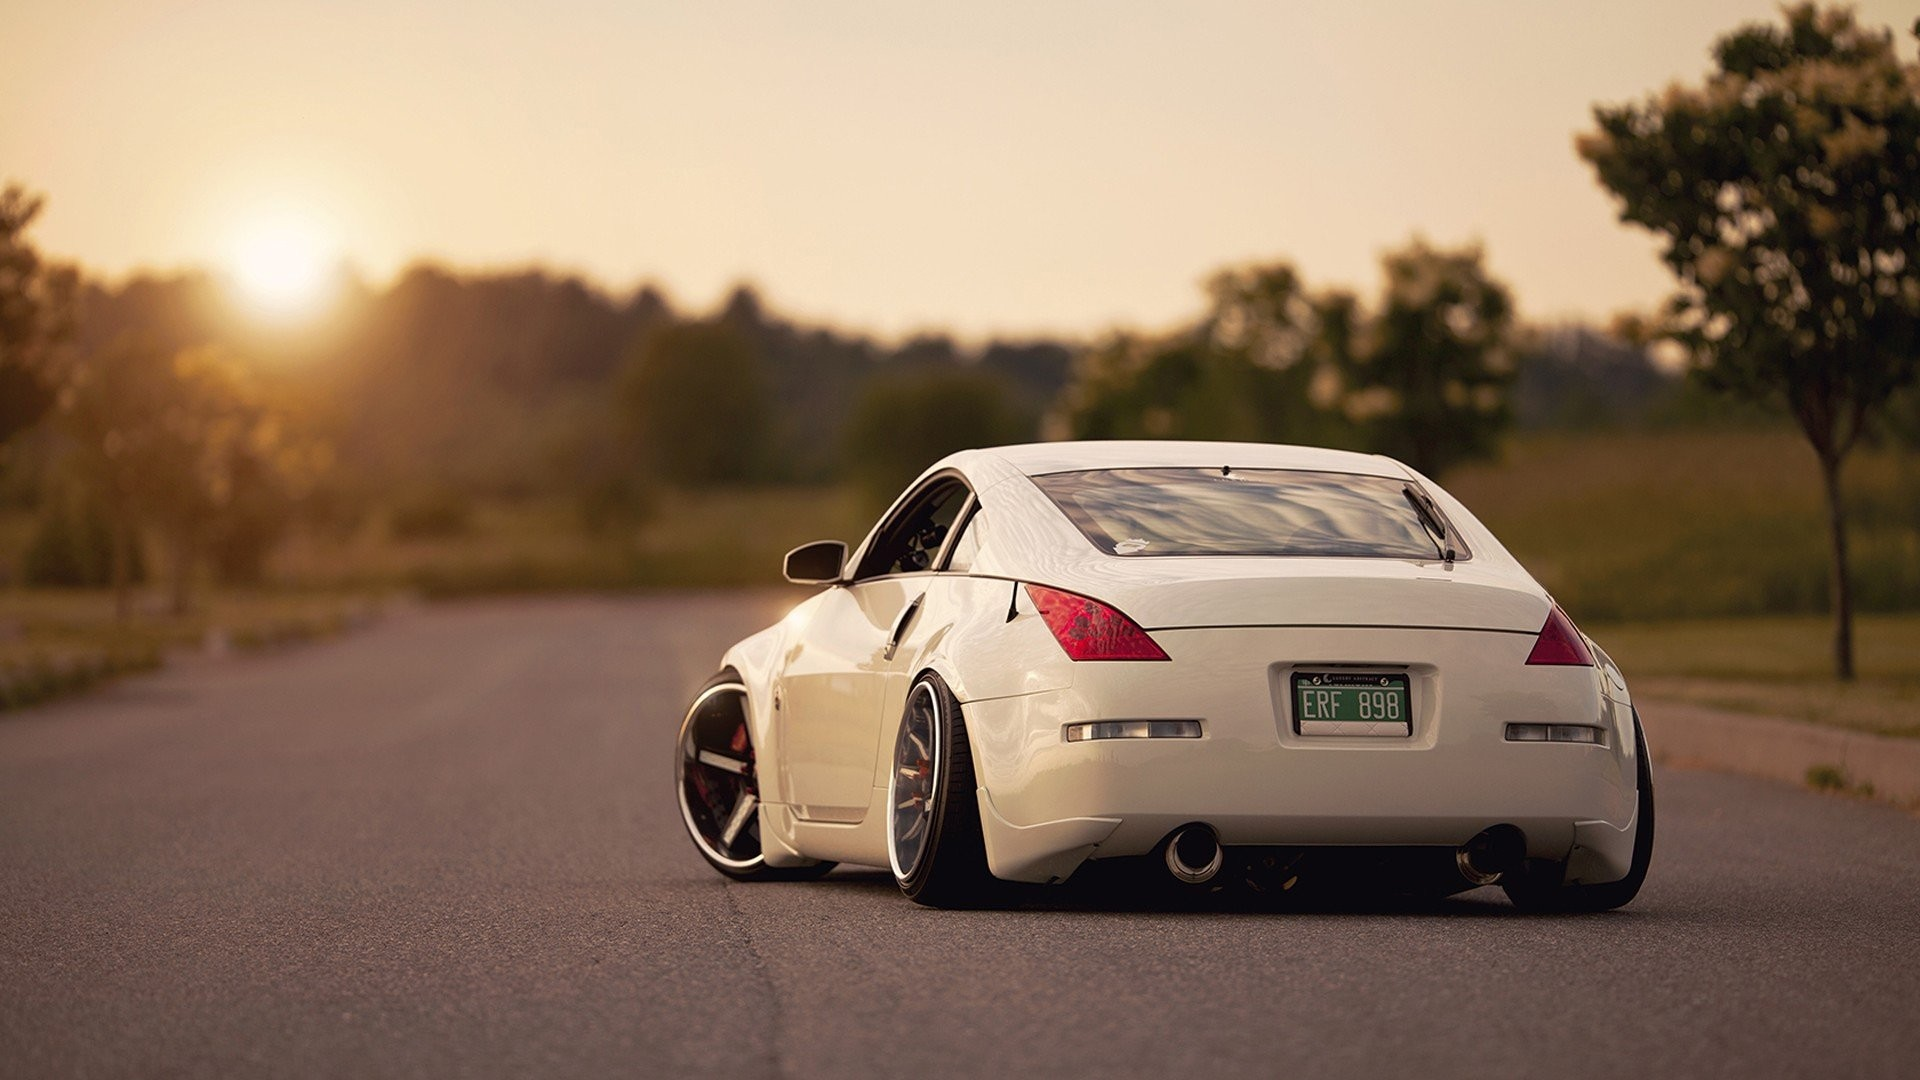 Pictures Jdm Wallpapers.